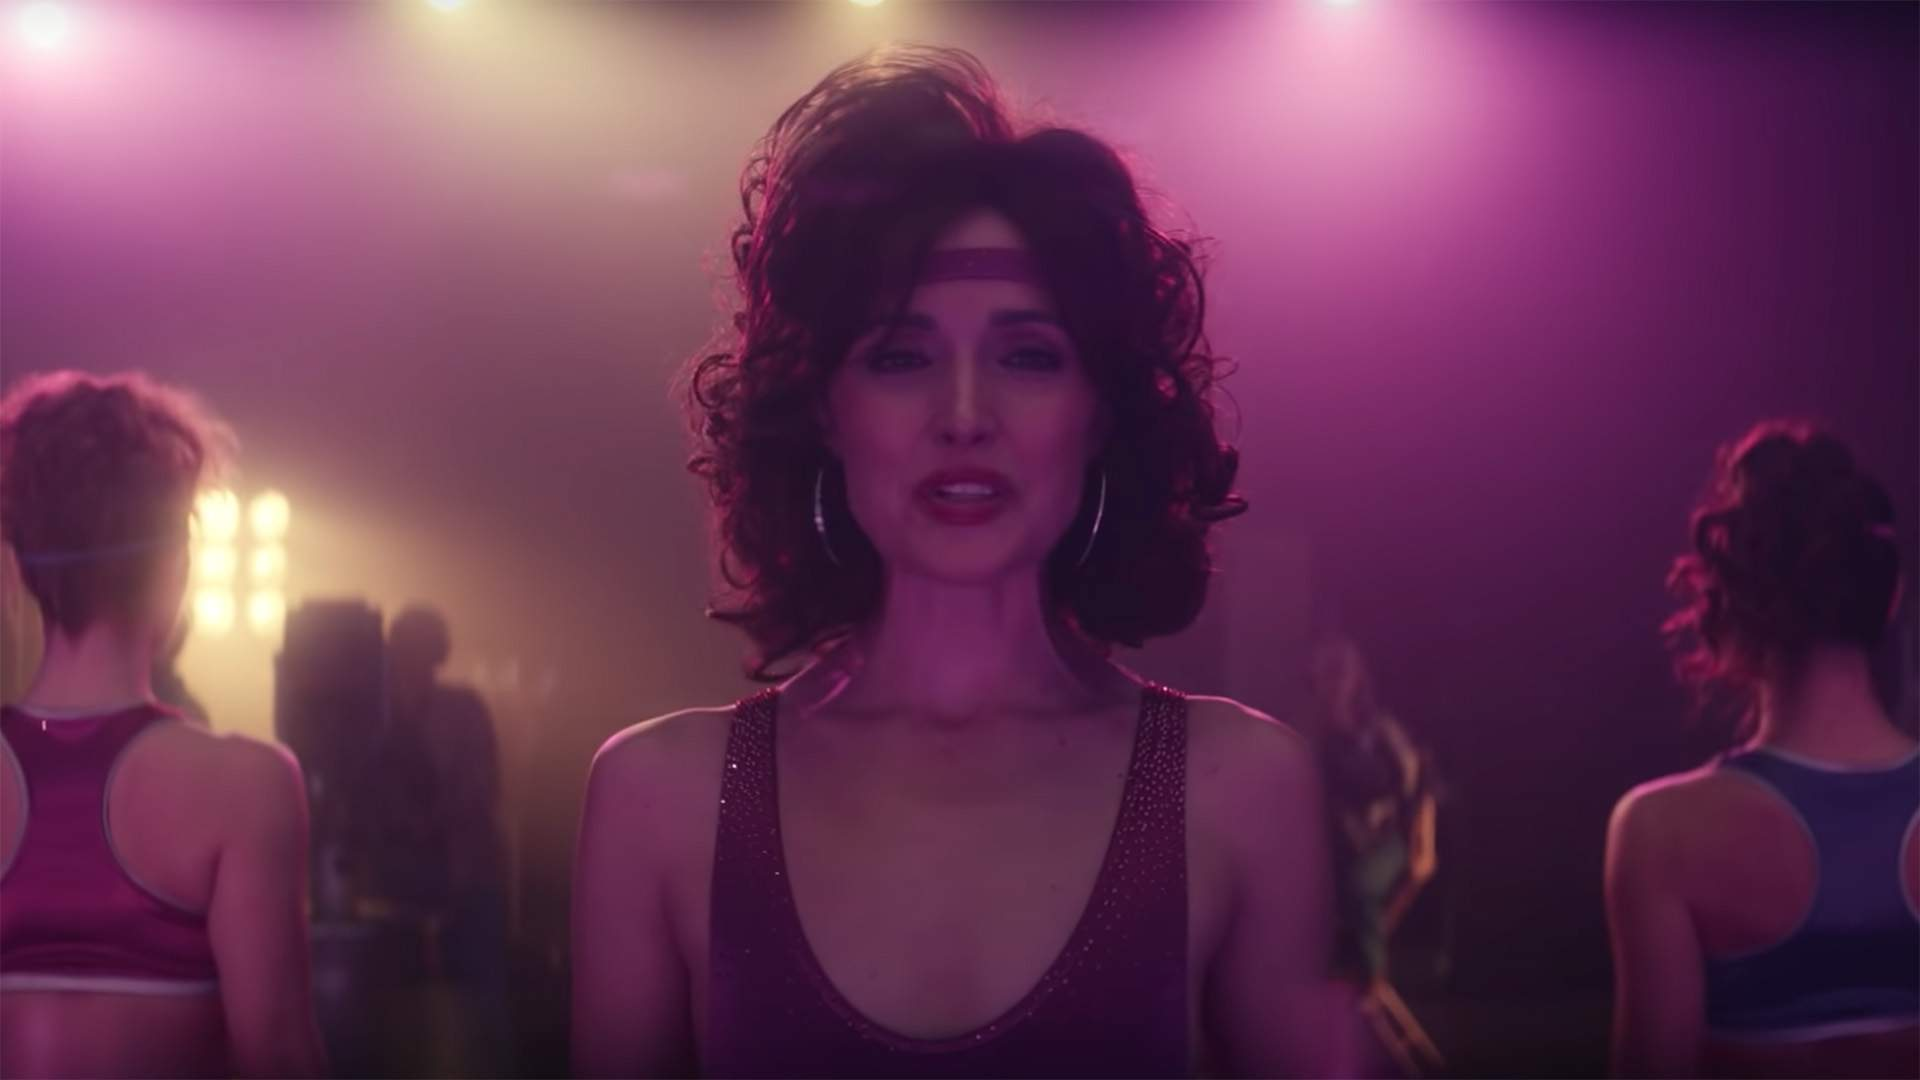 Rose Byrne Builds an Aerobics Empire in Apple TV+'s Supremely 80s New Dark Comedy 'Physical'